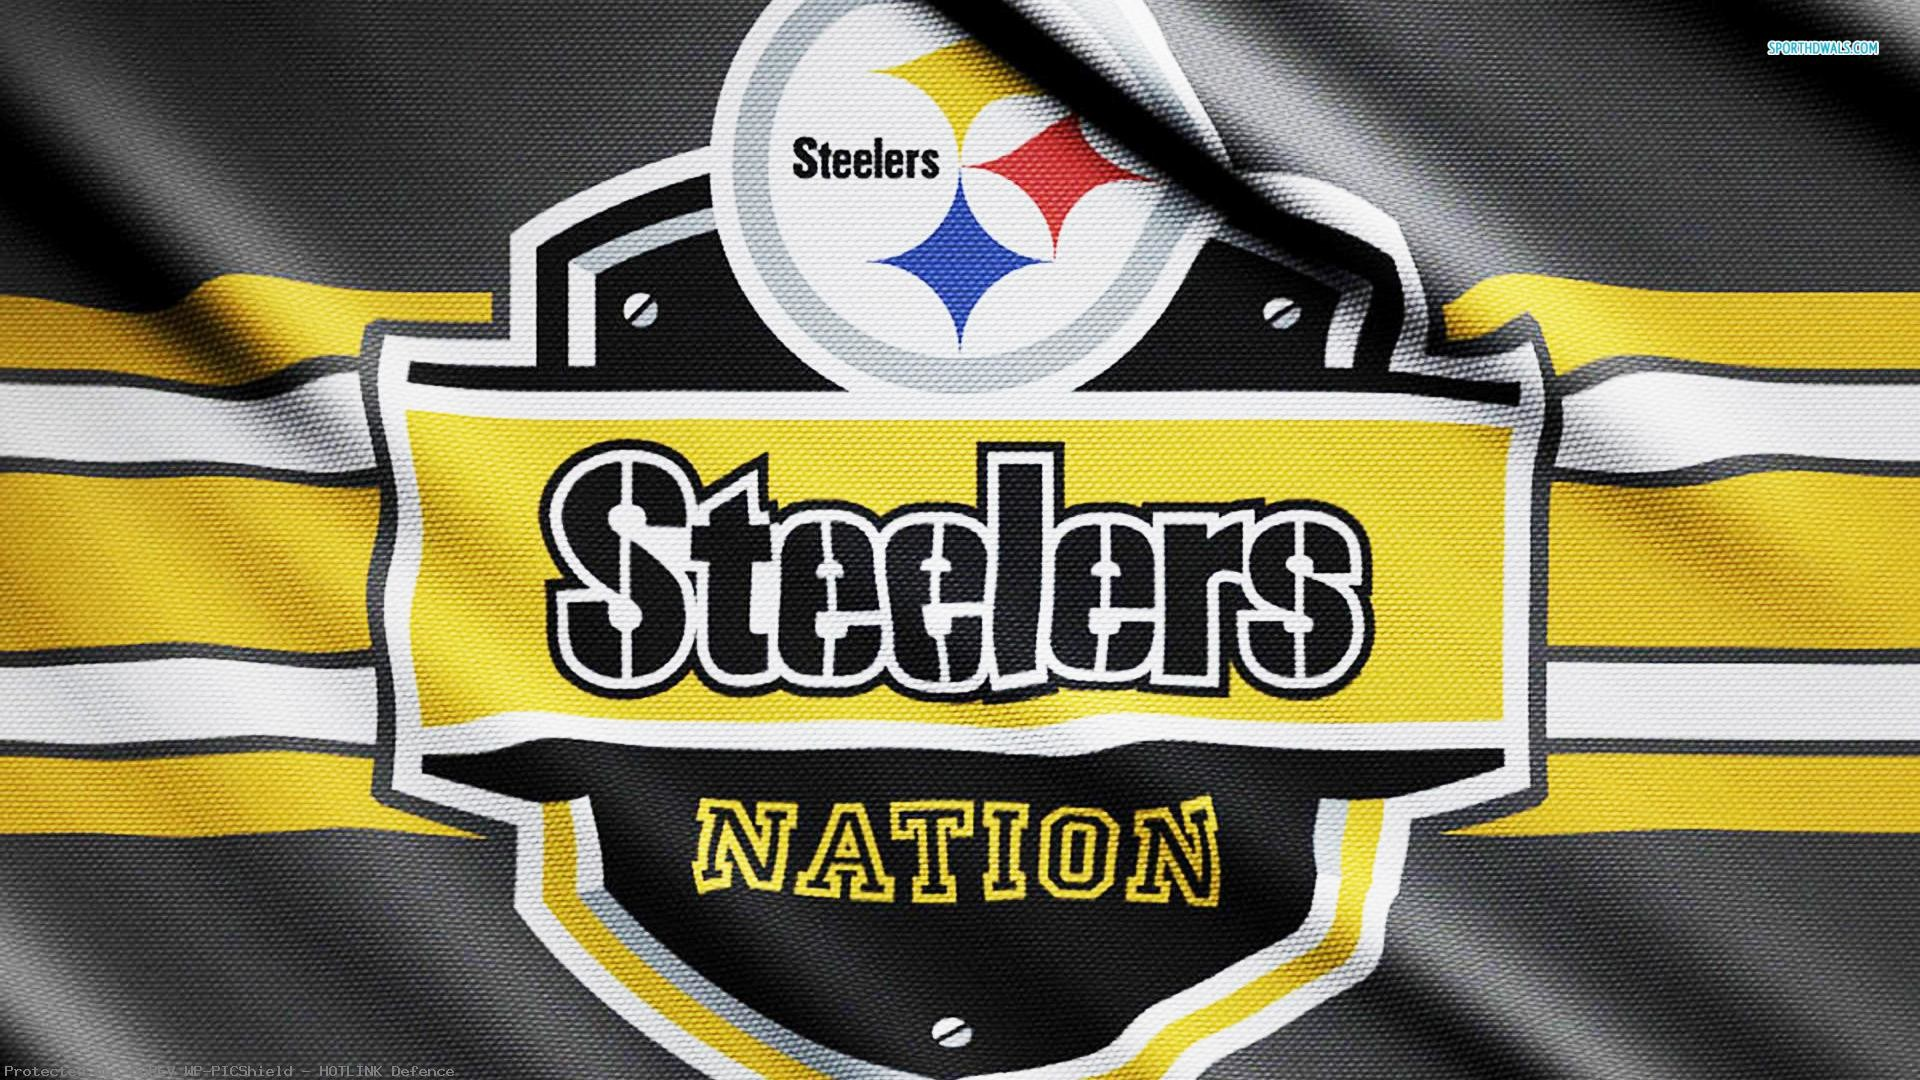 images-pitssburgh-steelers-Pittsburgh-Steelers-1920×1080-wallpaper-wp6008442